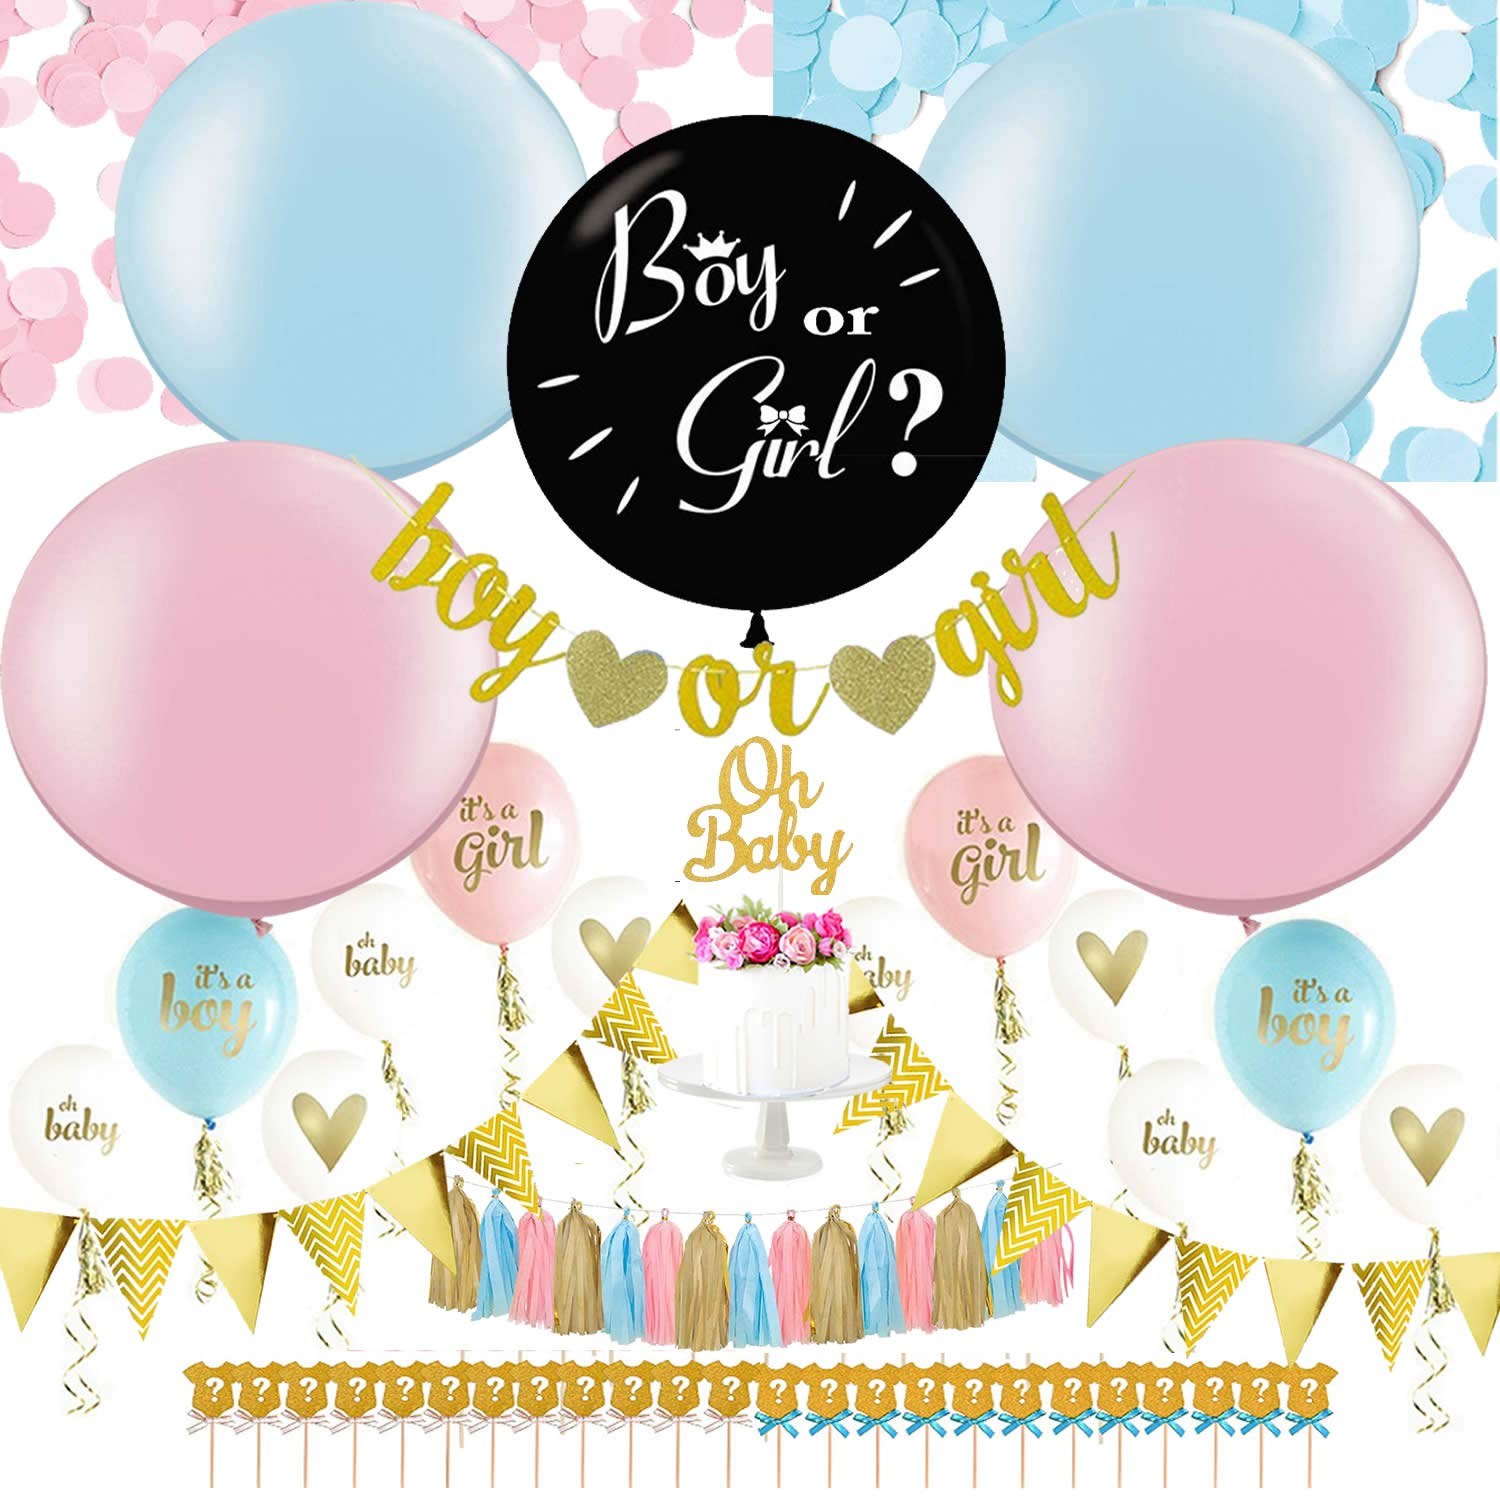 Gender Reveal Party Supplies   36' Gender Reveal Balloon, Baby Shower Decorations Set, Baby Gender Reveal Party Supplies, Baby Reveal Party Supplies, Gender Reveal Ideas, Gender Reveal Decorations KIT